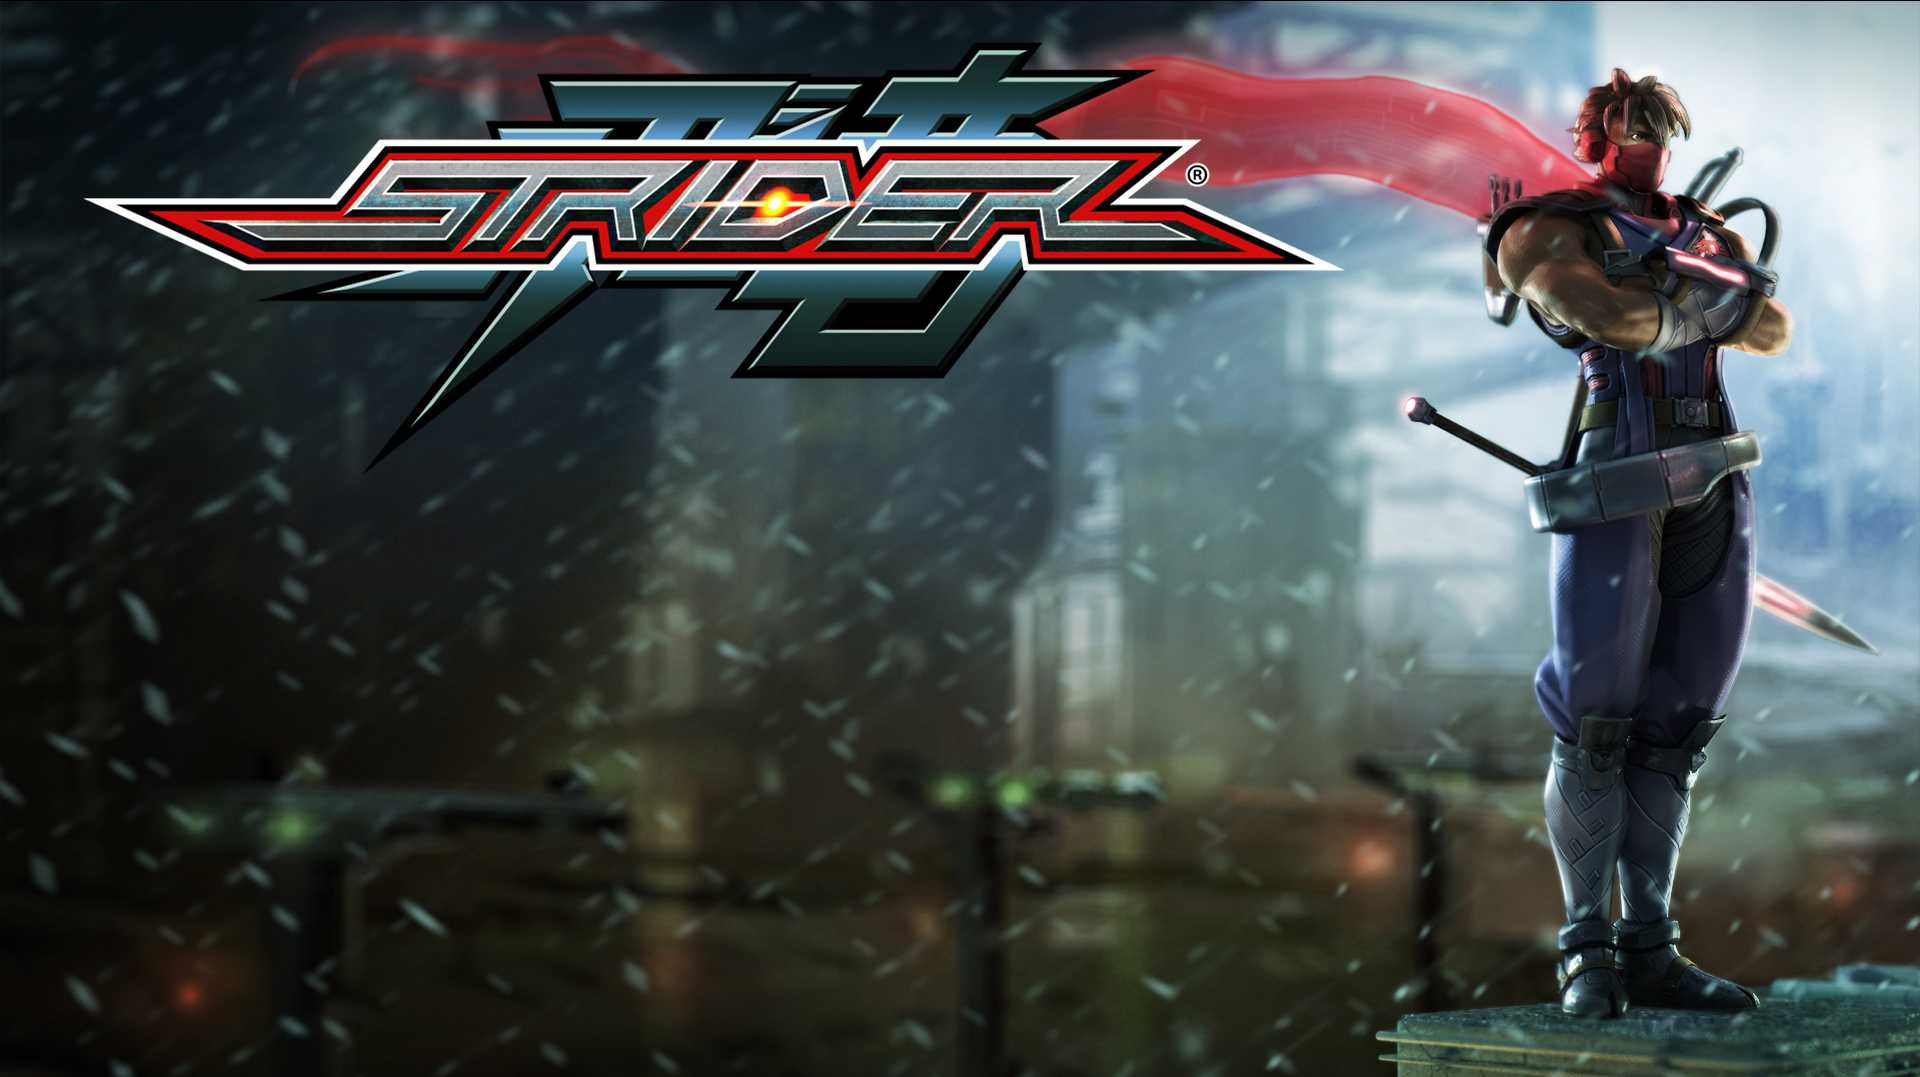 Strider Hd Hands On Impressions This Game Is So Awesome